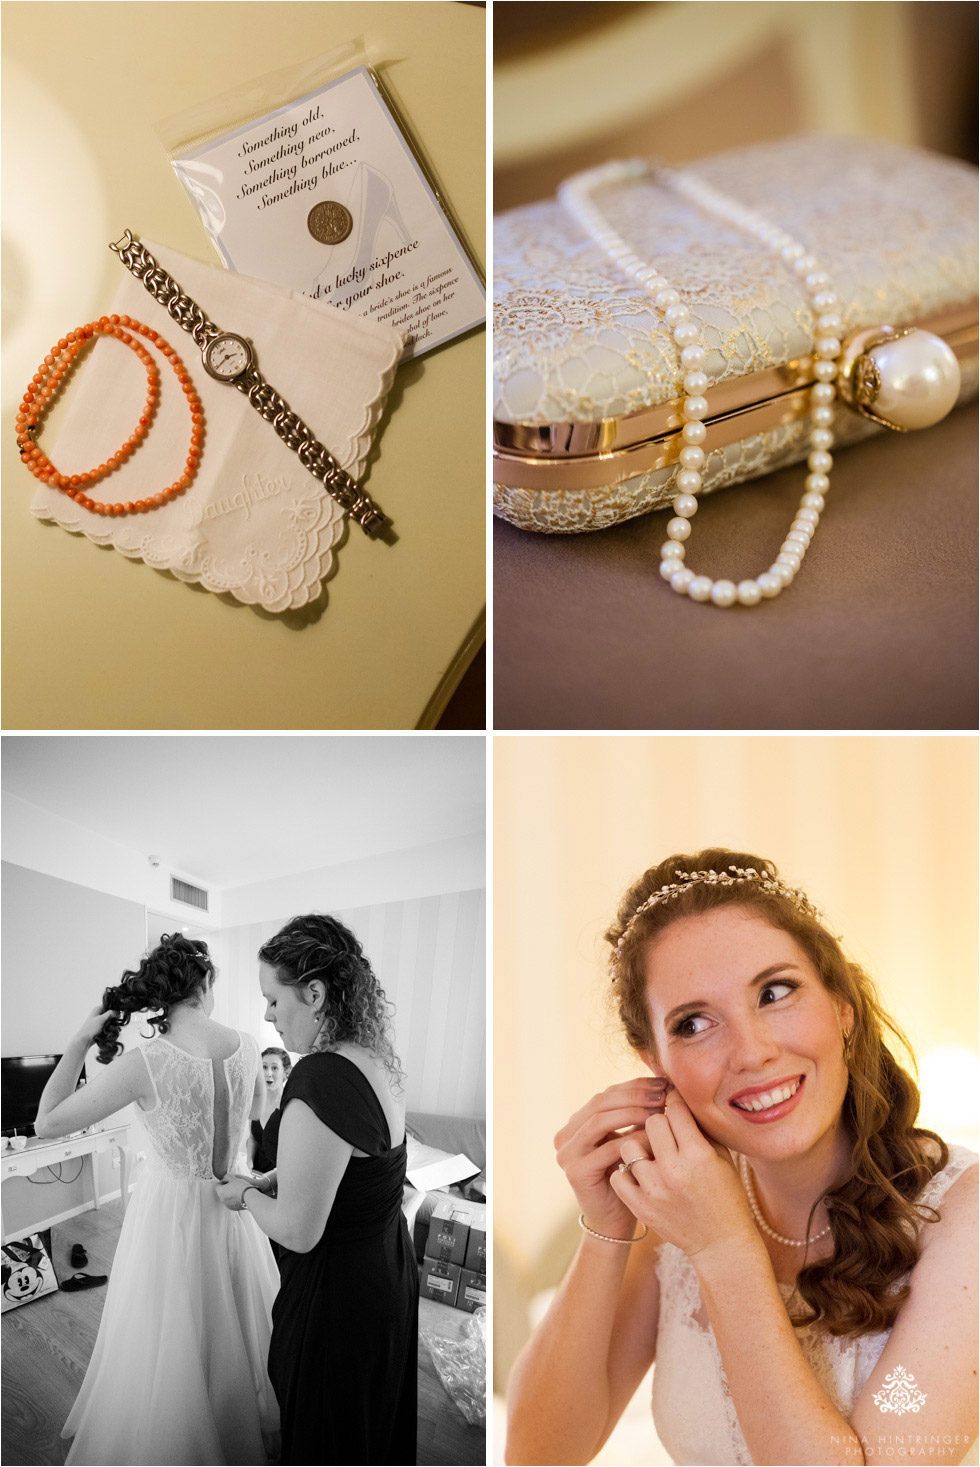 Details of the bride getting ready on her wedding day in Bassano del Grappa, Italy - Blog of Nina Hintringer Photography - Wedding Photography, Wedding Reportage and Destination Weddings